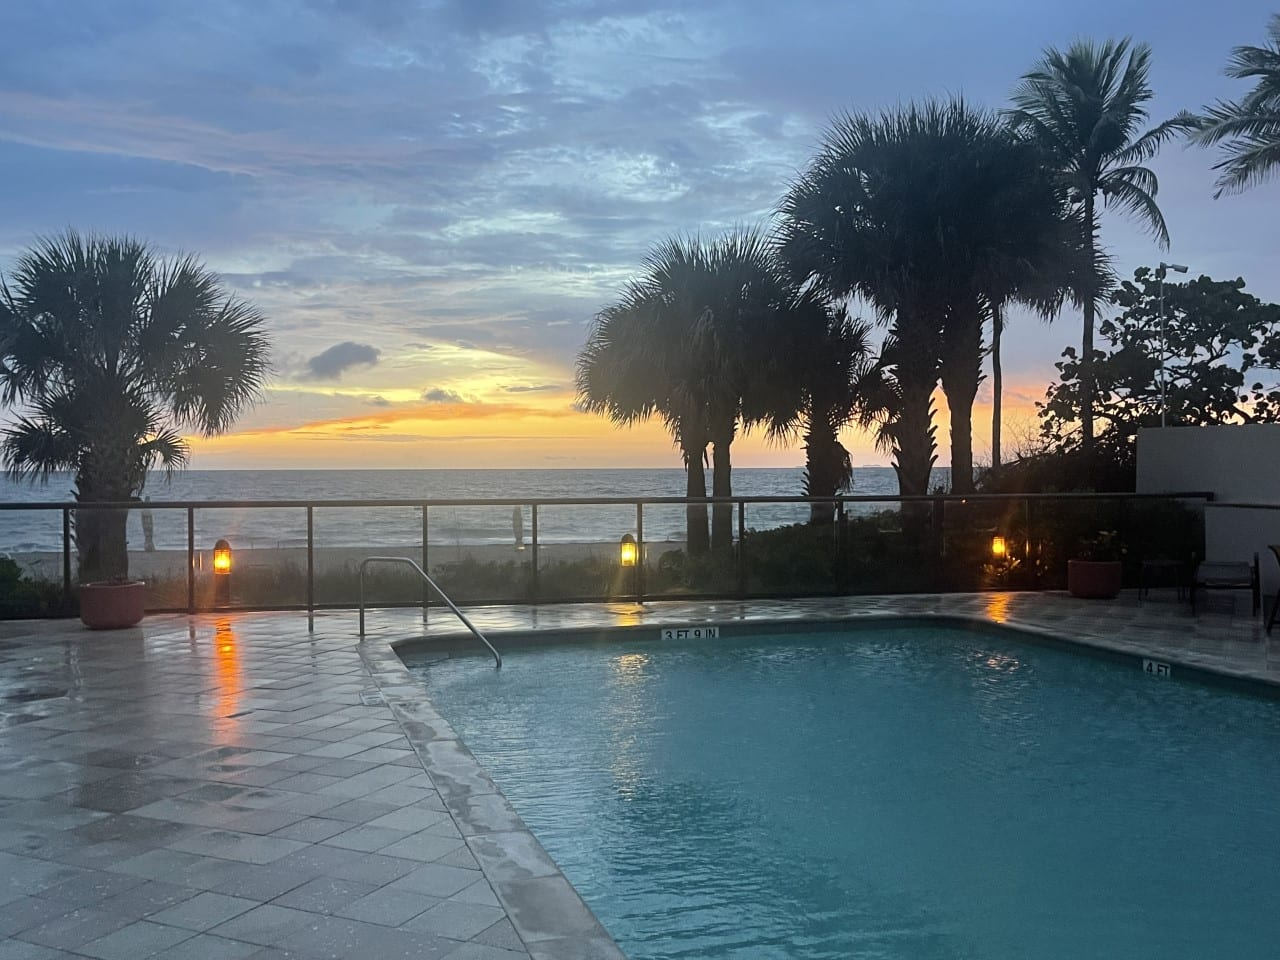 Rounded rectangle pool near the beach (sunset)